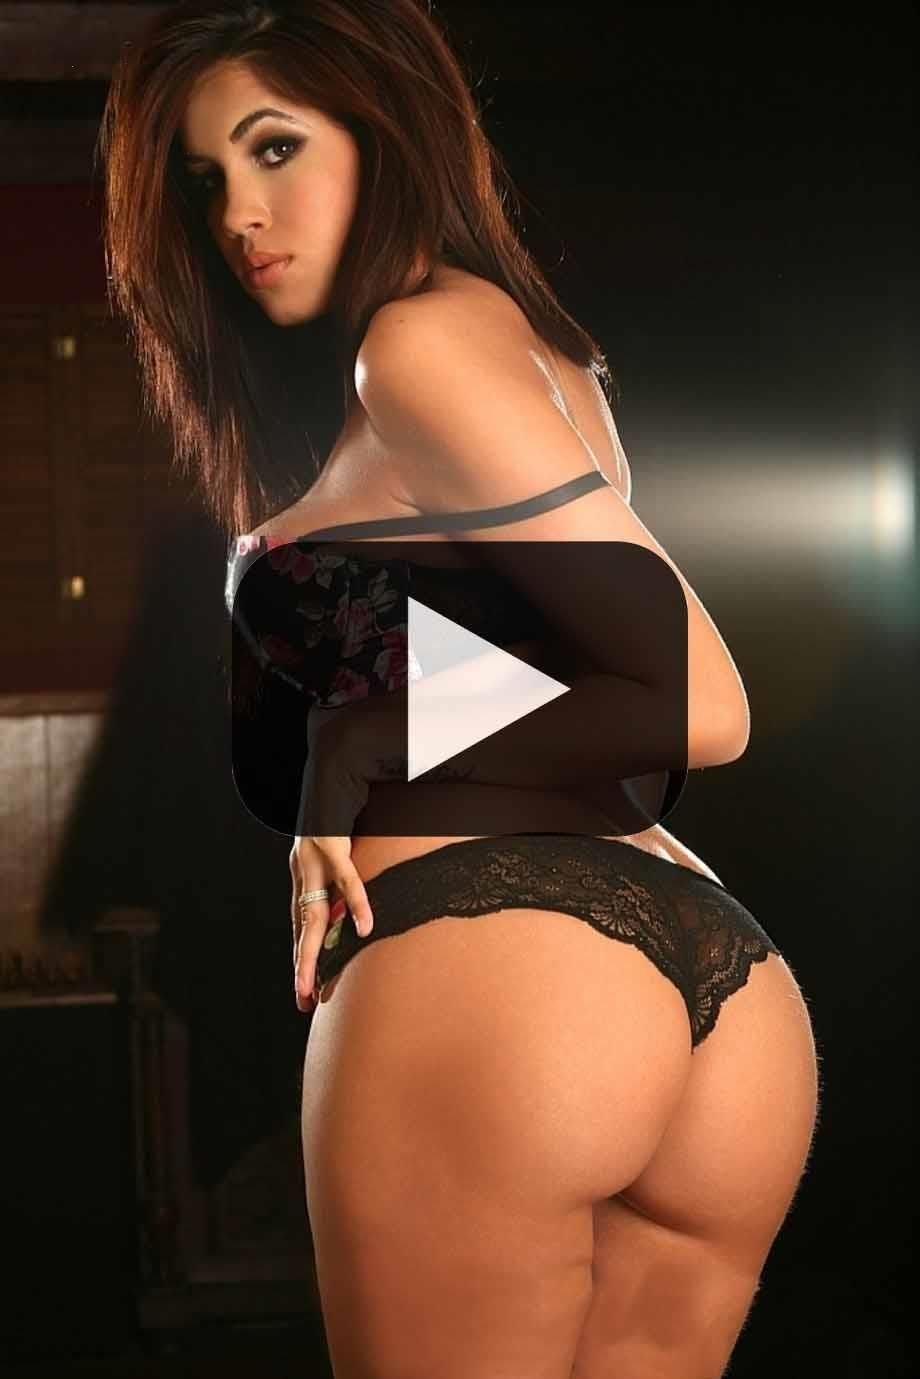 freeporn tube. free adult dating sight. nude videos click here